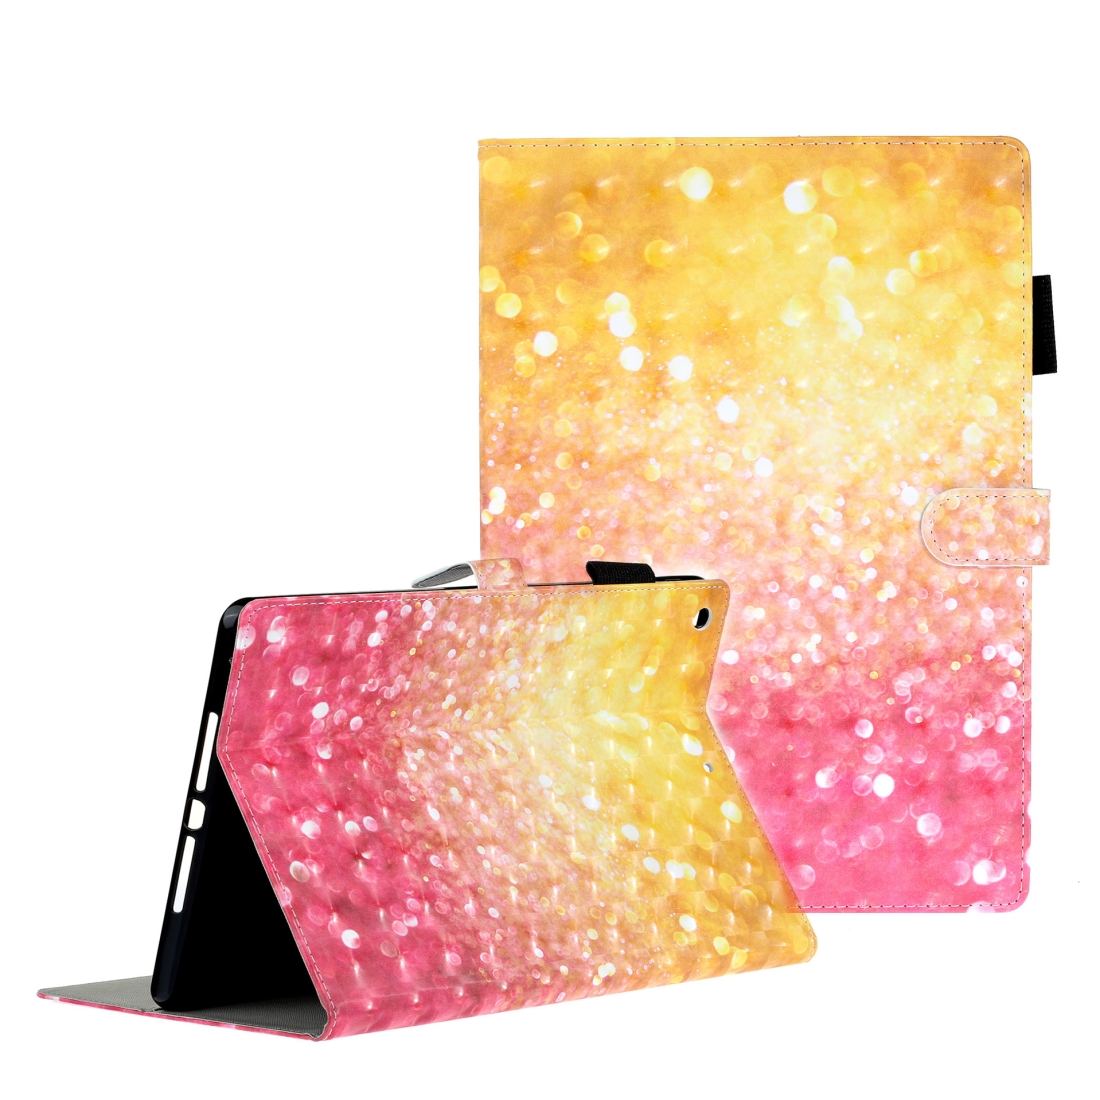 iPad 7th Generation Case (10.2 Inch) 3D Embossing Leather Case & Slim Profile (Sand)